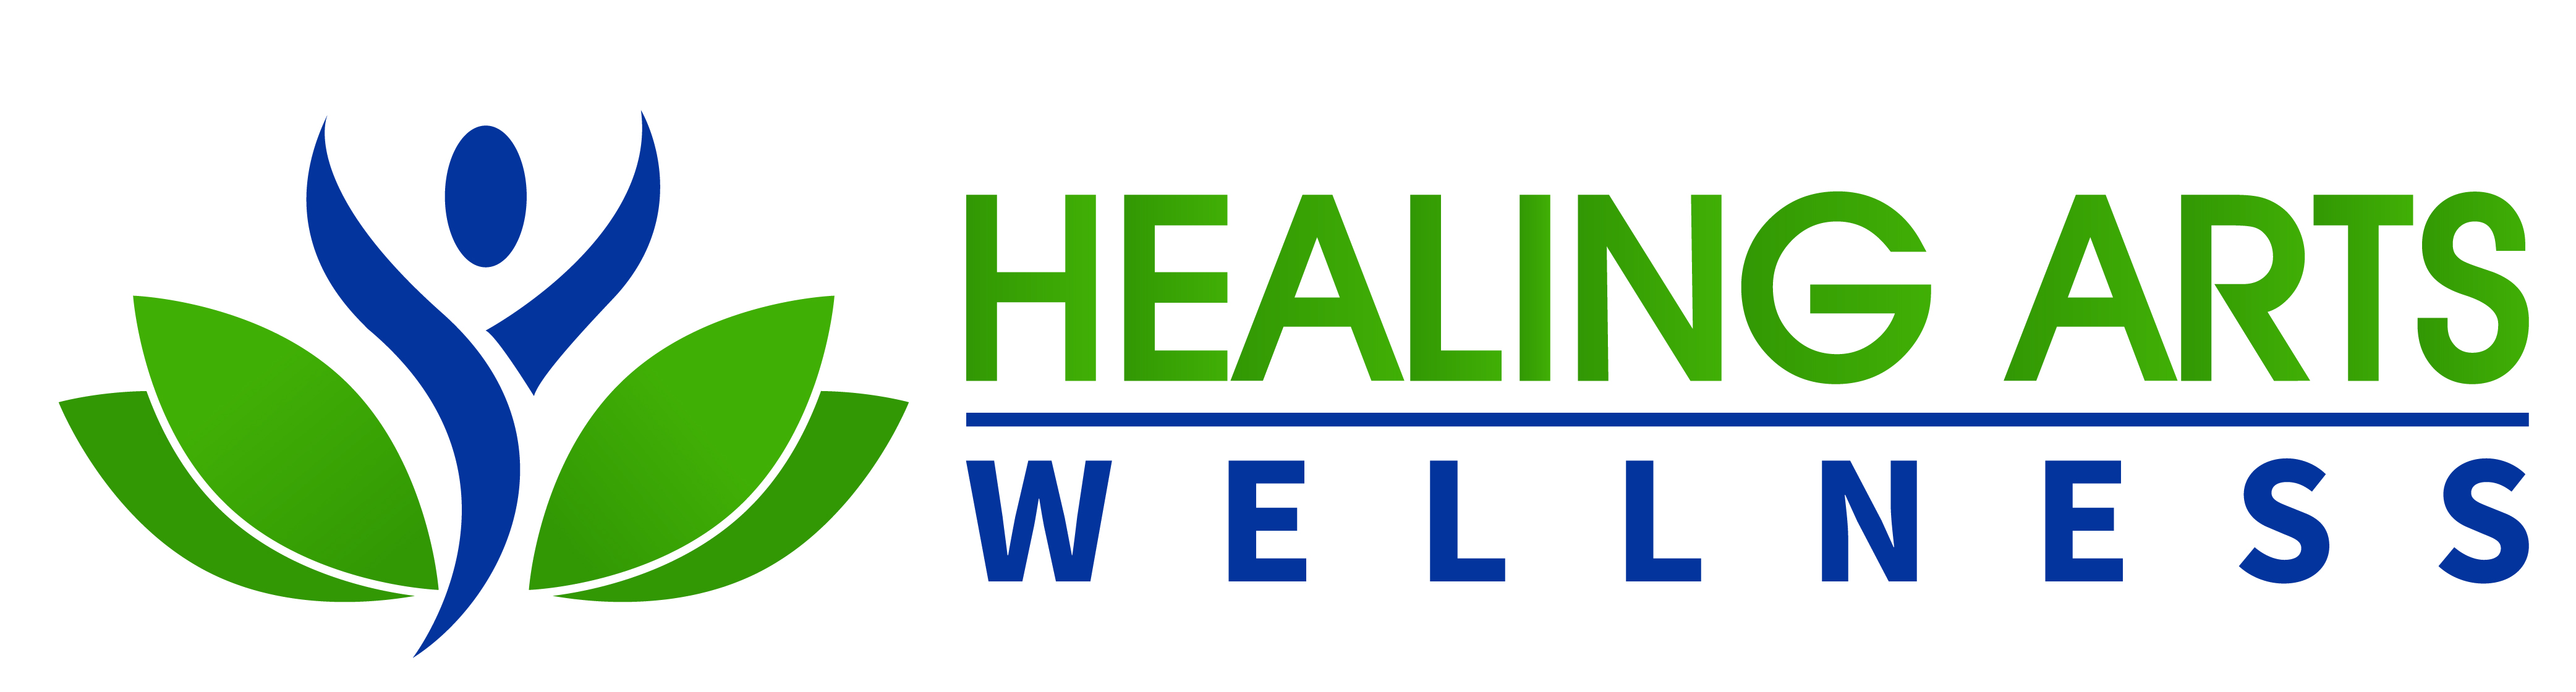 Healing Arts Physical Therapy and Wellness